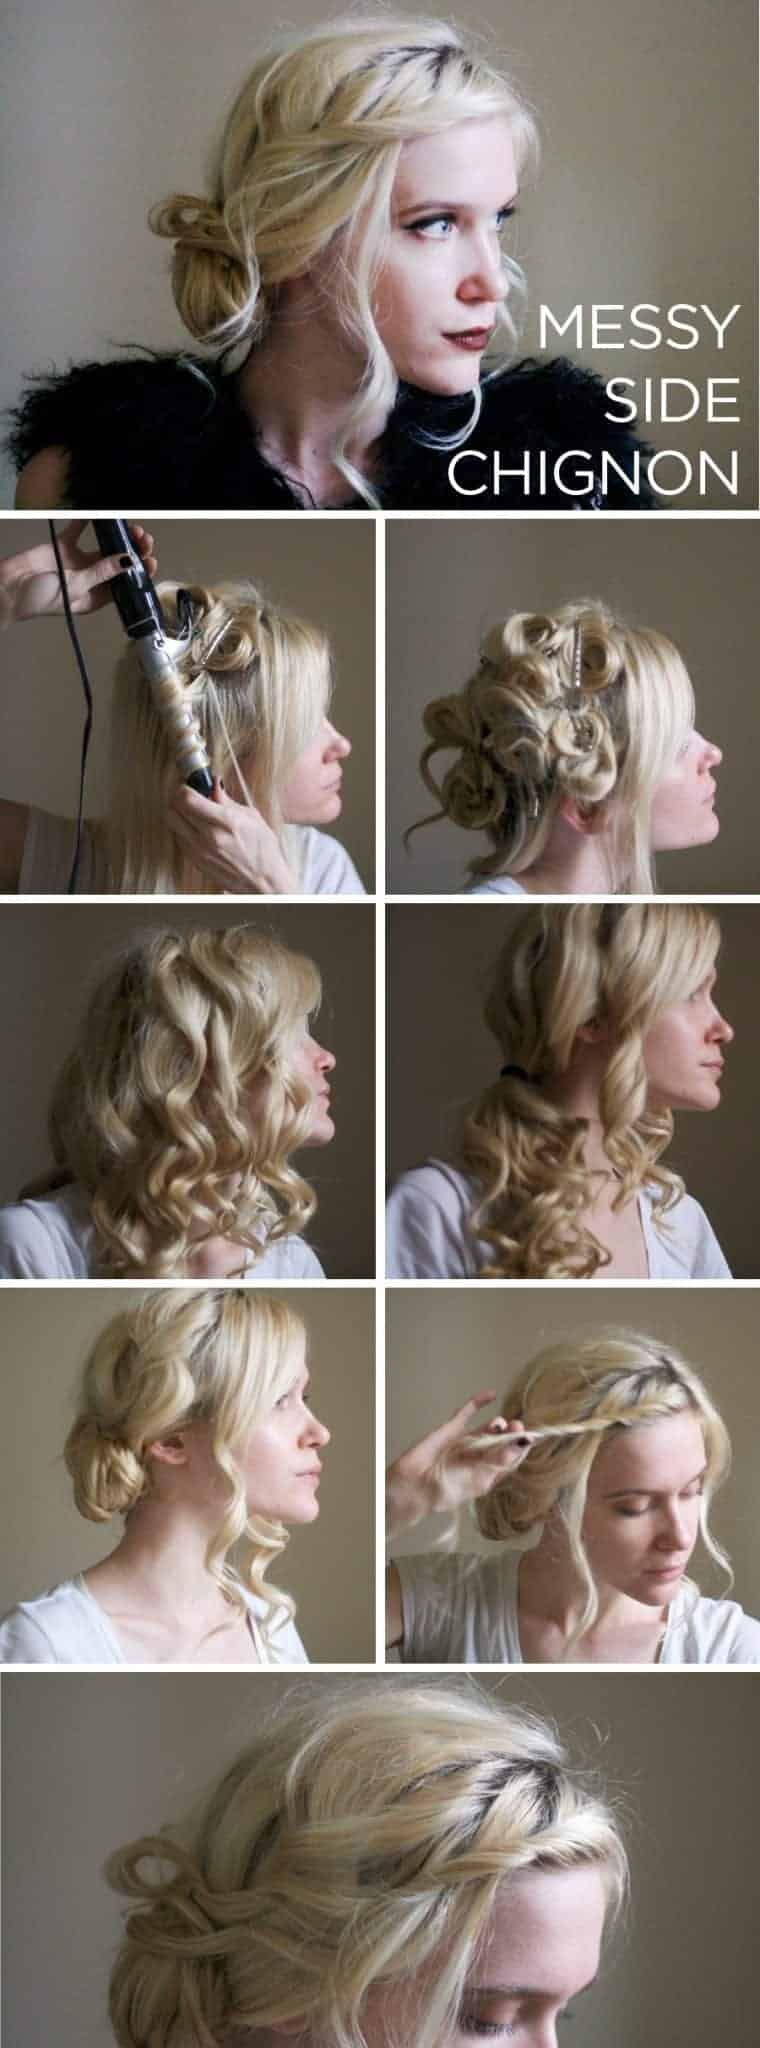 Cute messy updo hairstyles for blonde girls